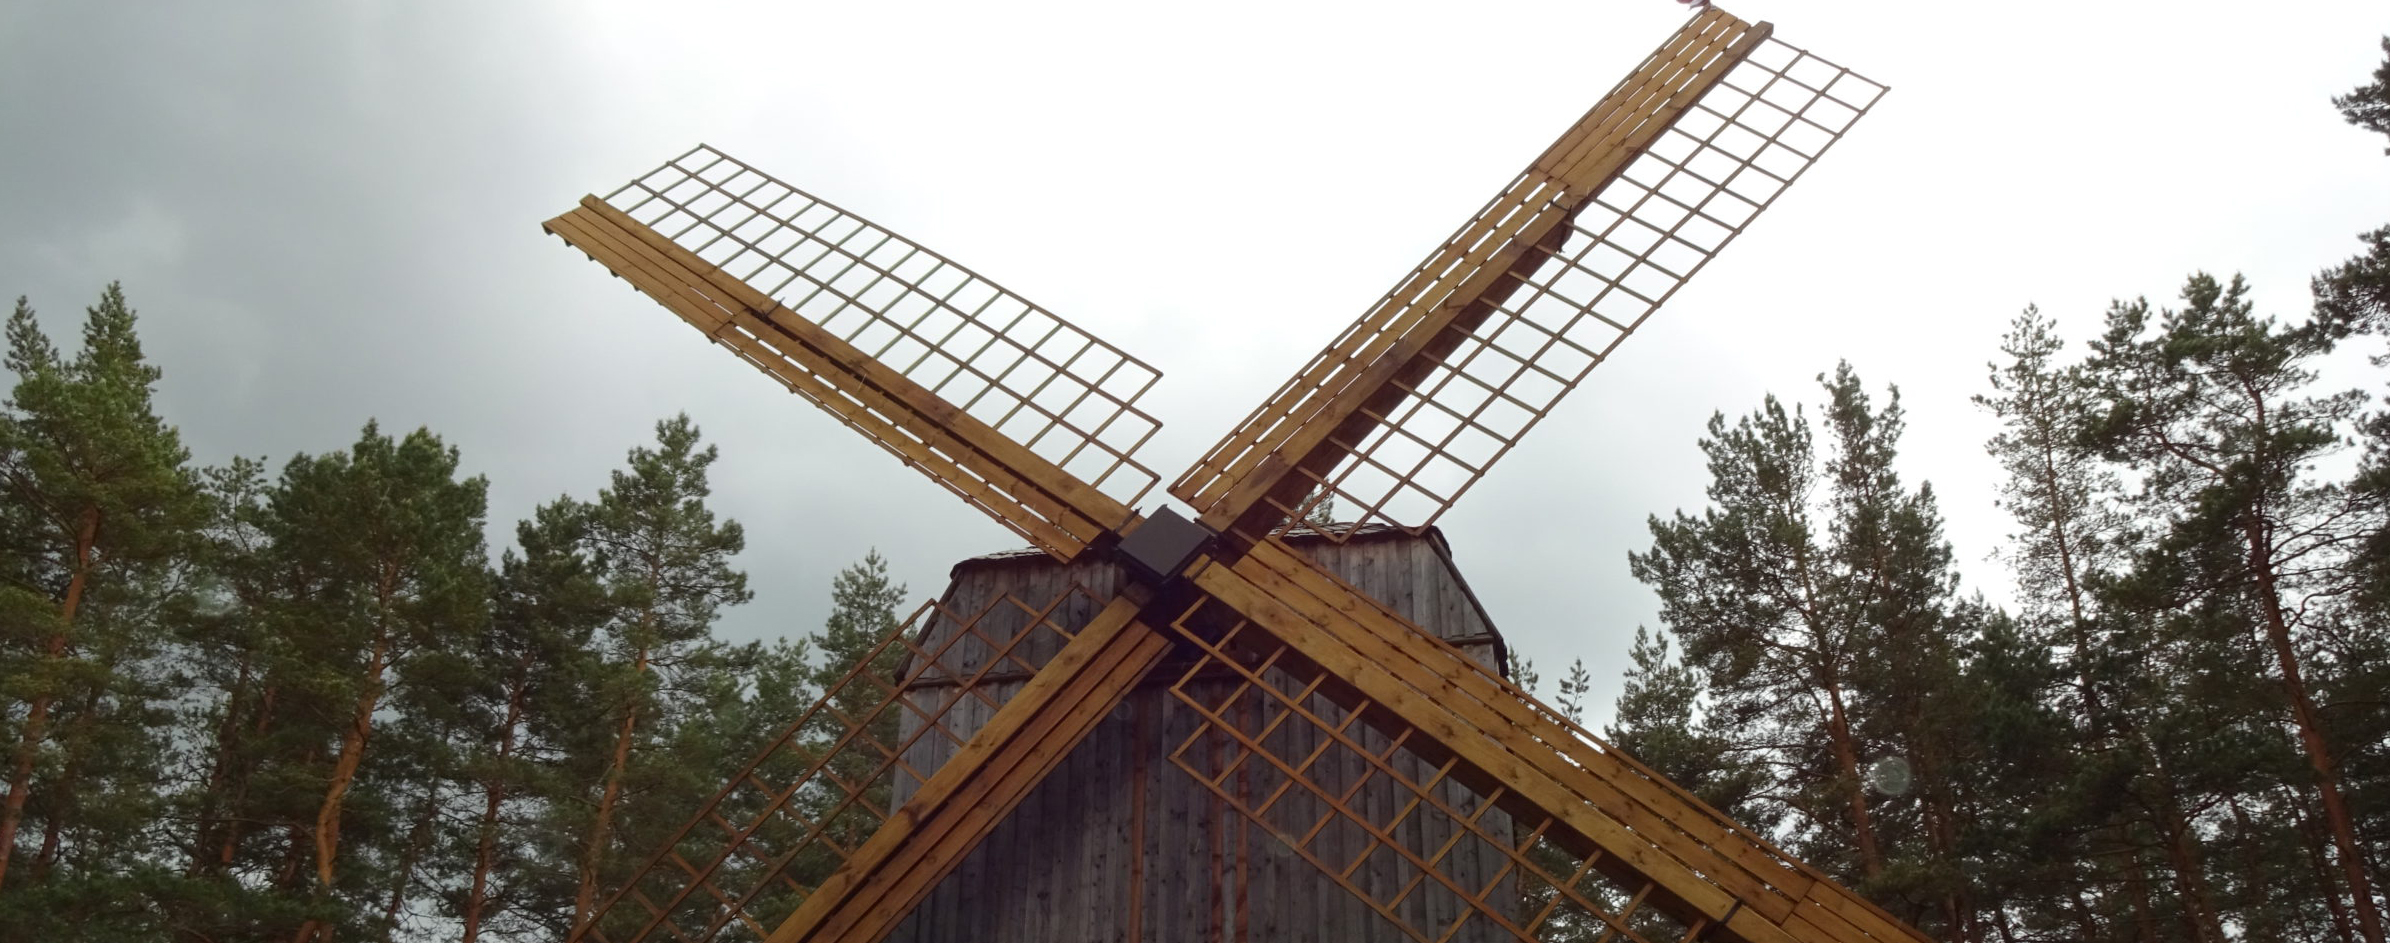 Windmill of Pabazhu